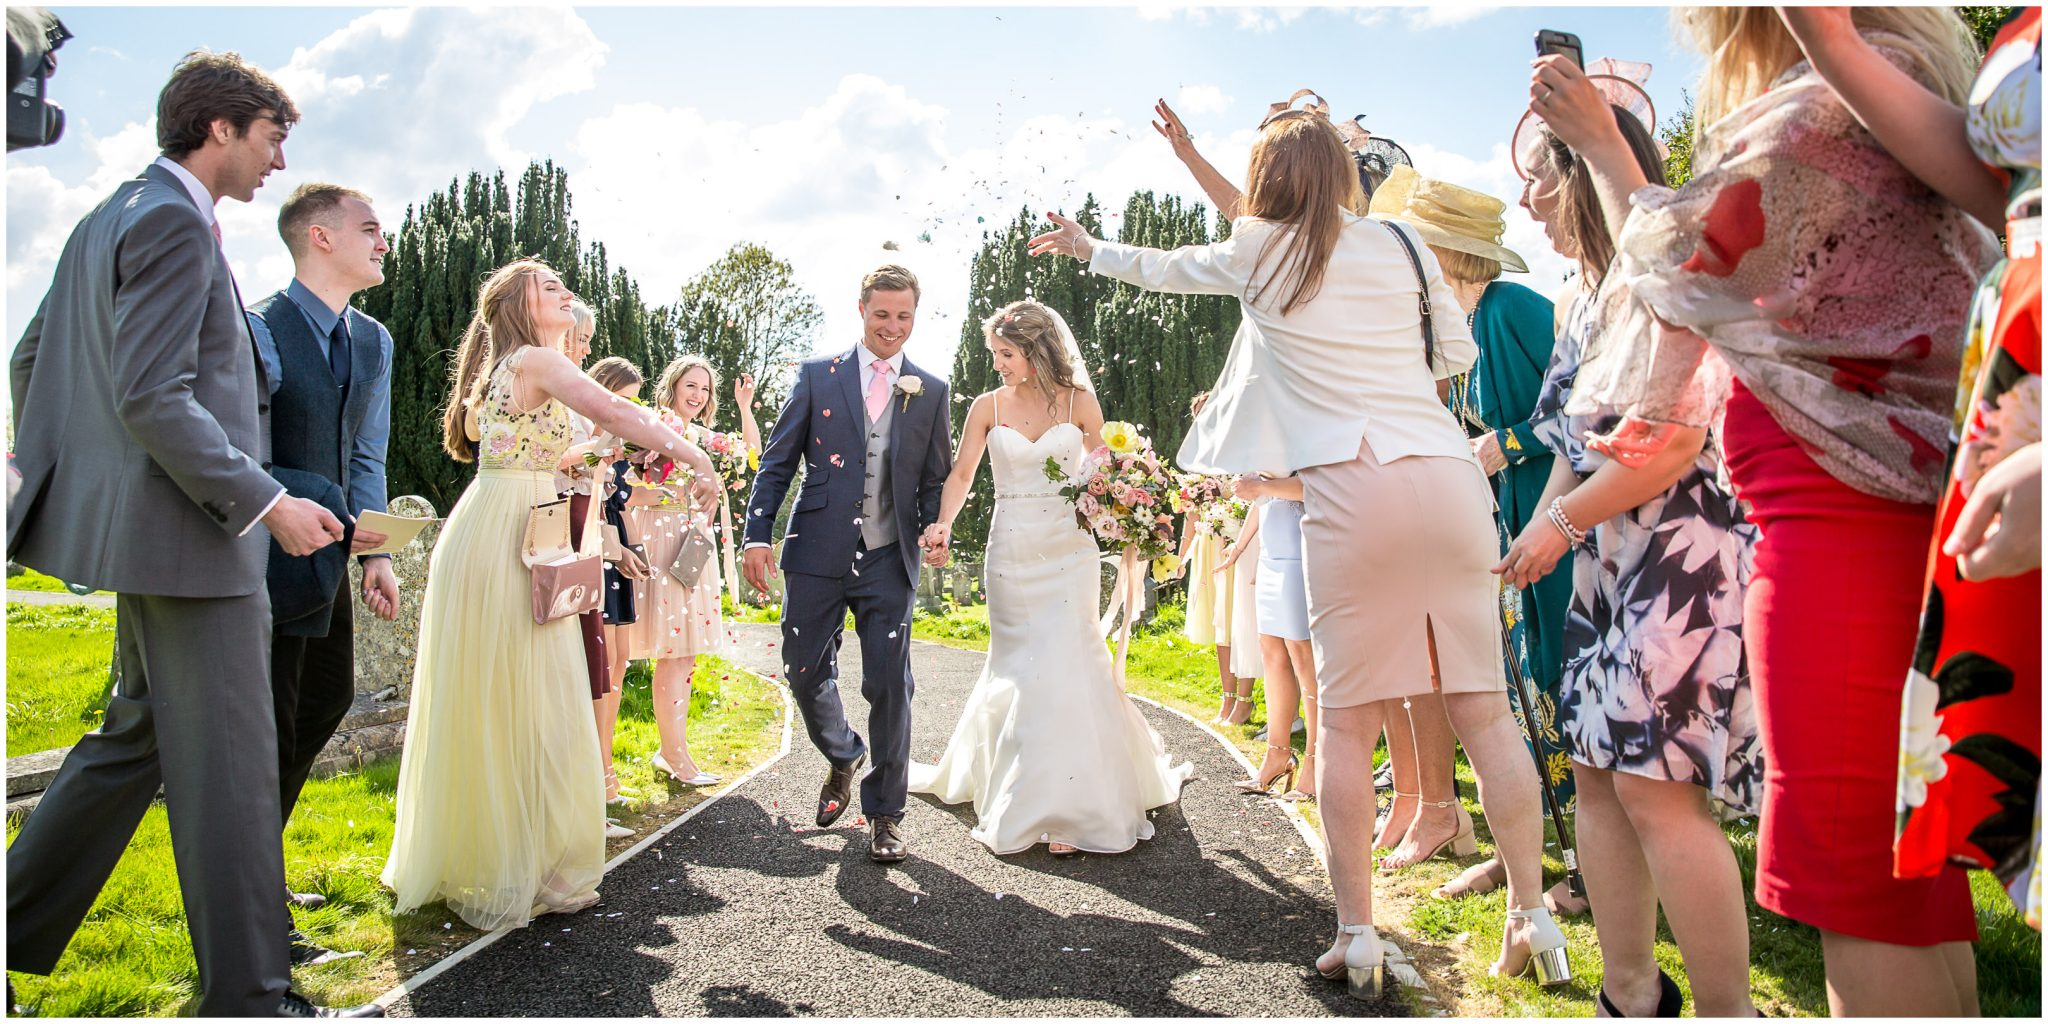 Bride and groom greeted with confetti after wedding